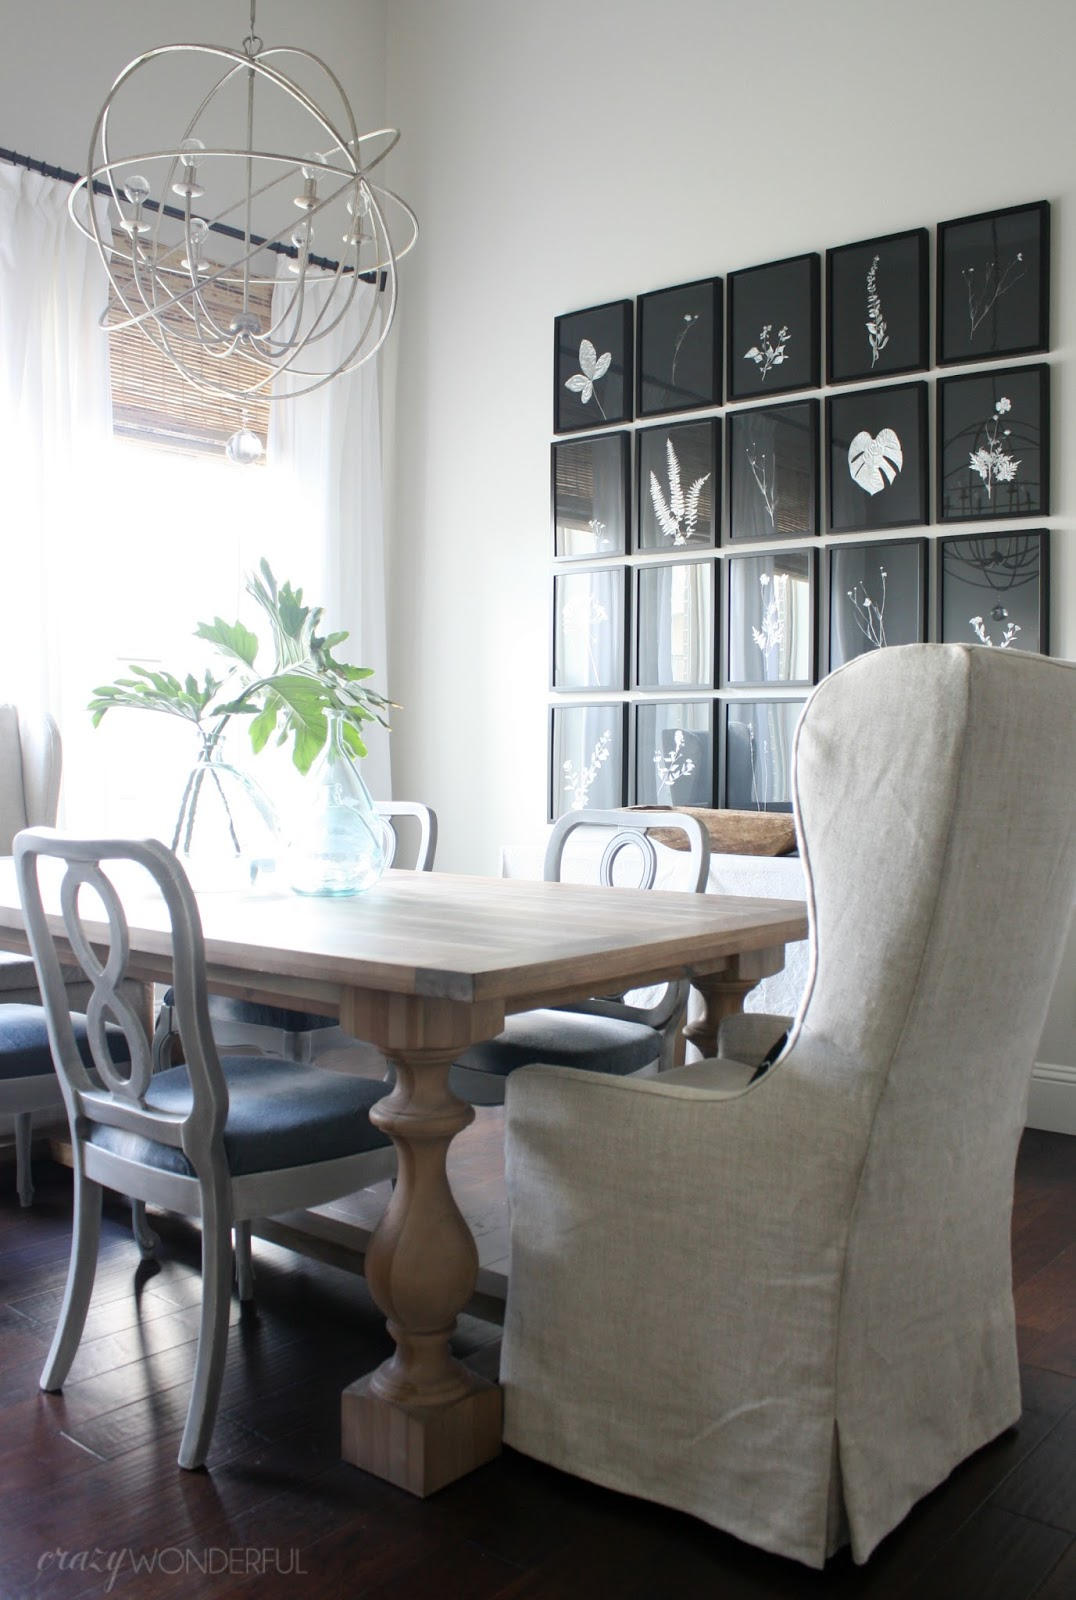 dining room updates + sheets as drapes - crazy wonderful